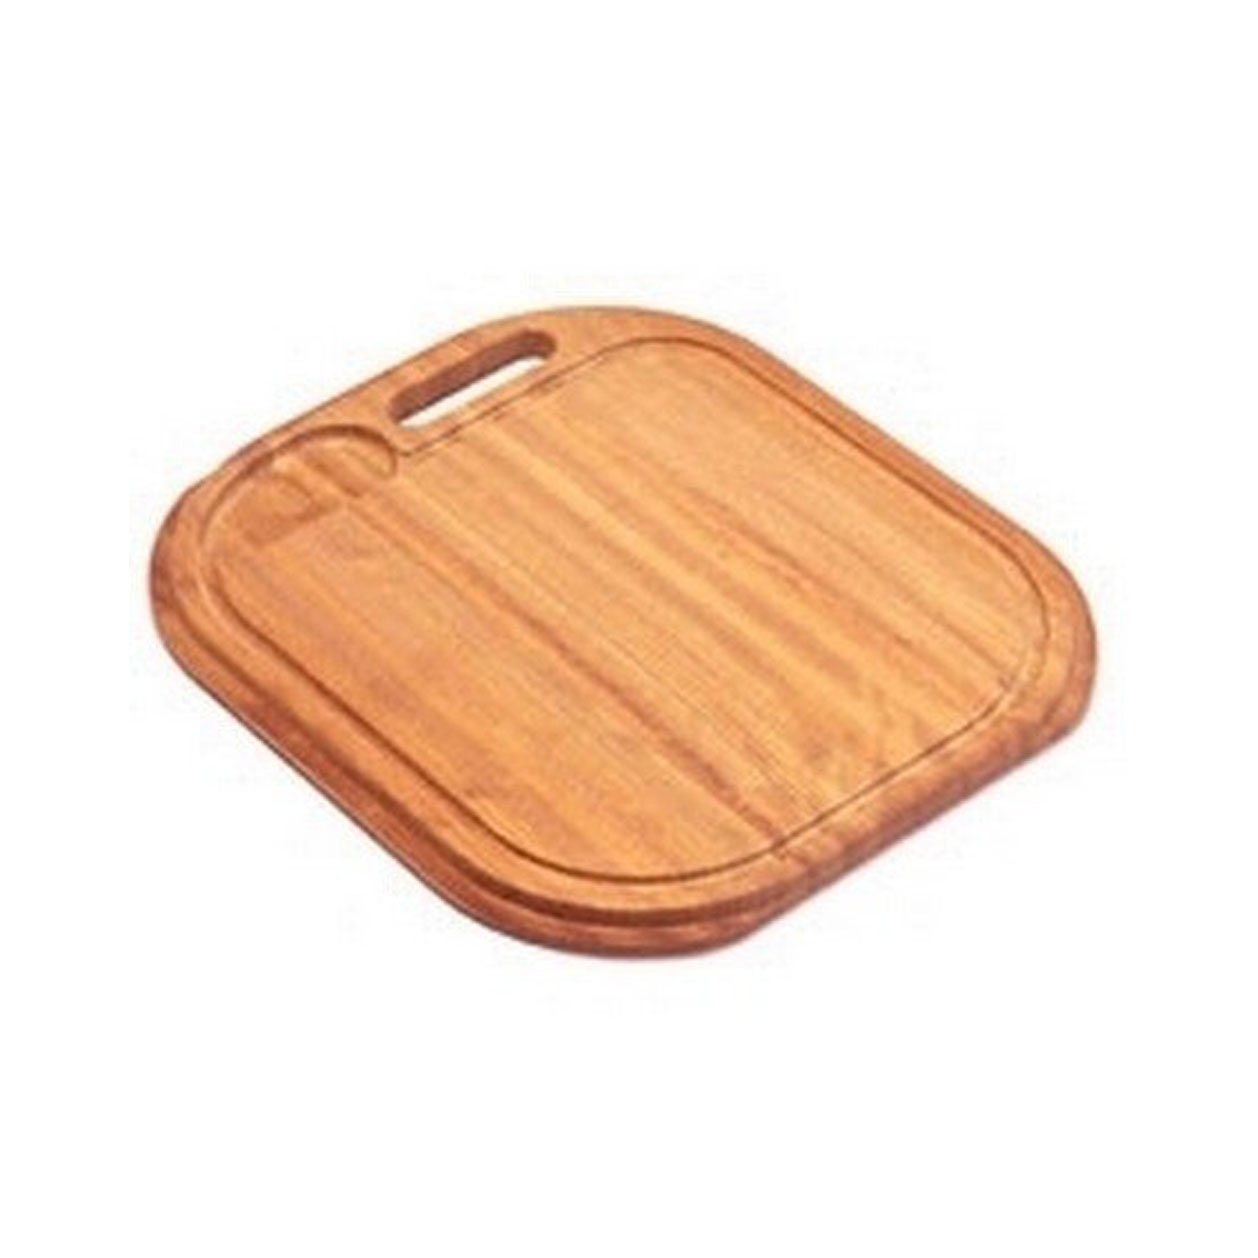 Franke CPX Compact Series Wood Cutting Board by Franke